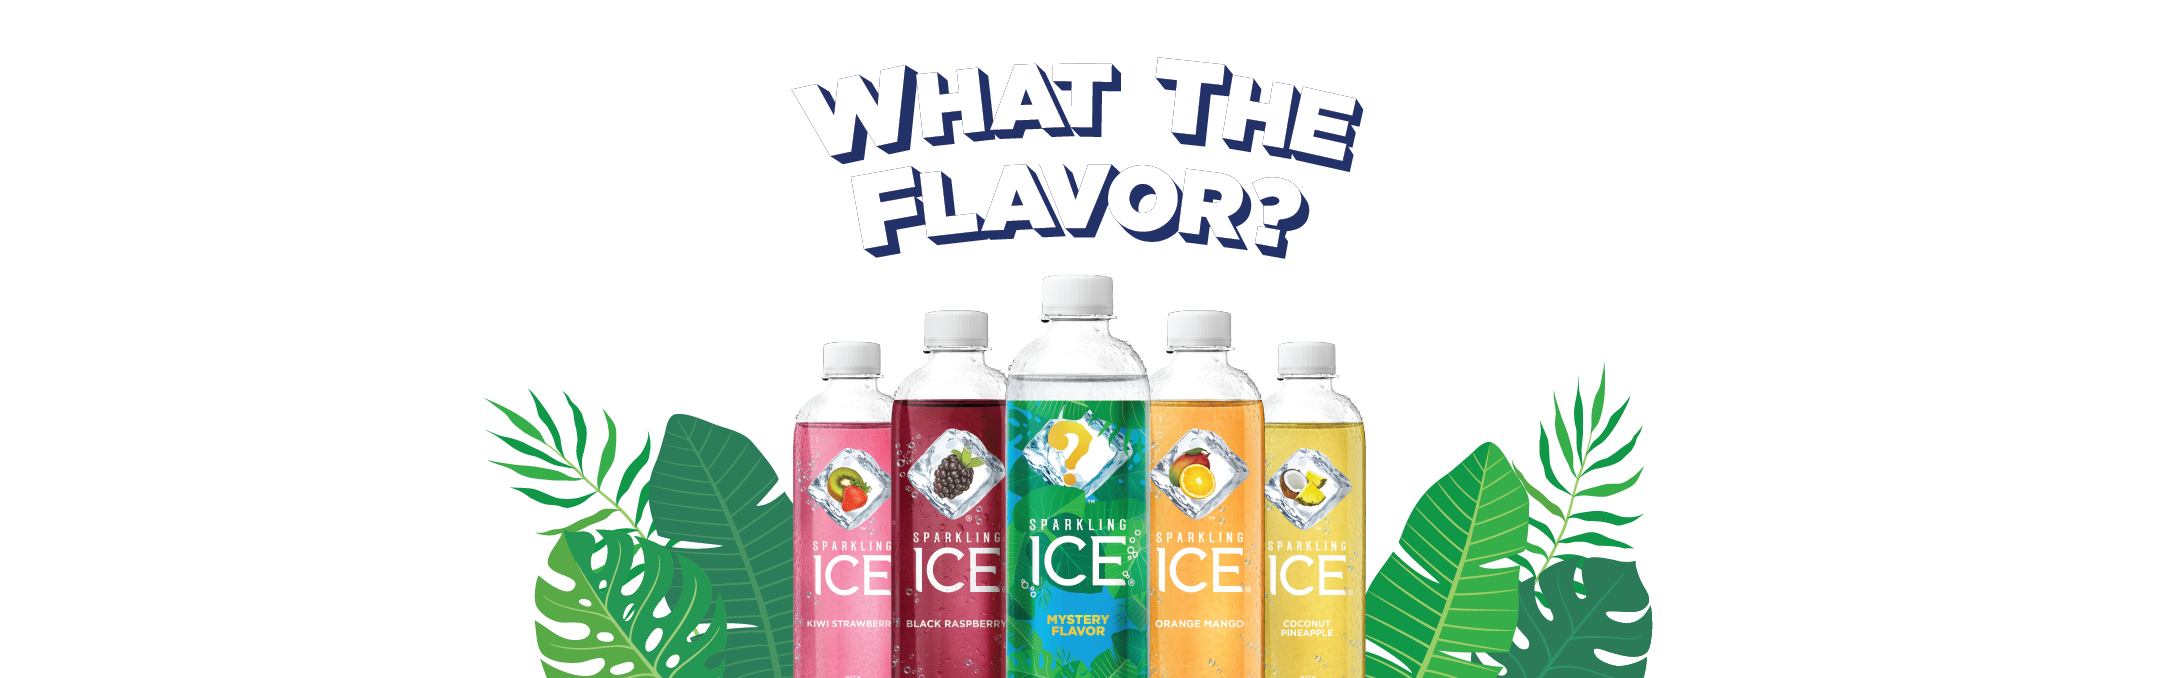 What The Flavor - Sparkling Ice